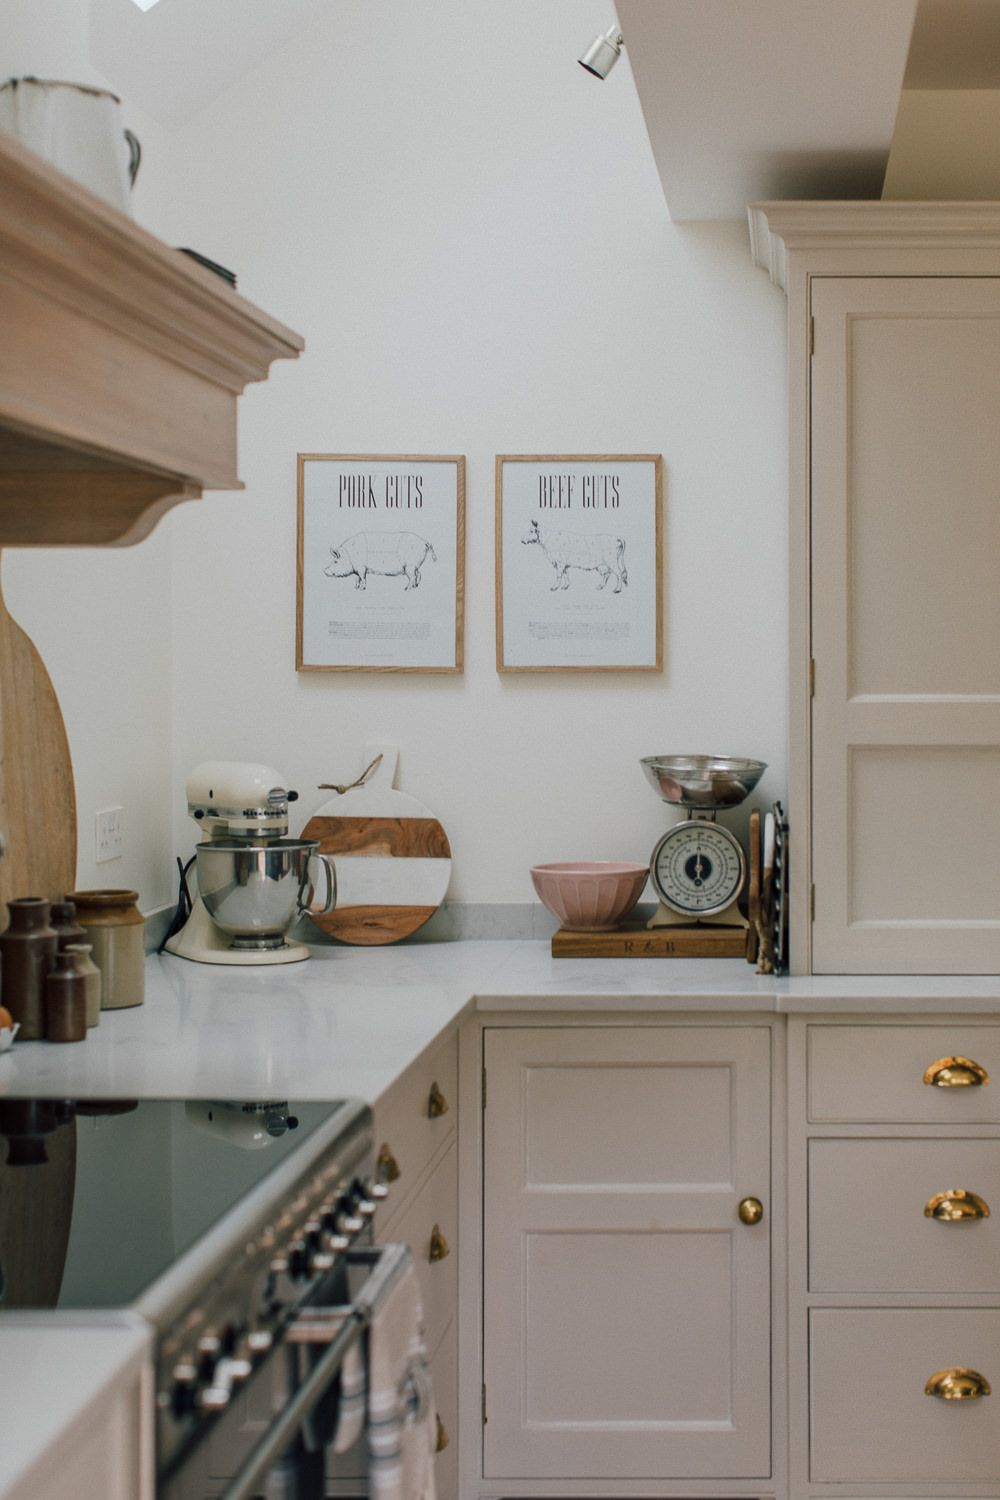 Best Rebecca S Kitchen Kitchen Design Farrow Ball Kitchen 400 x 300